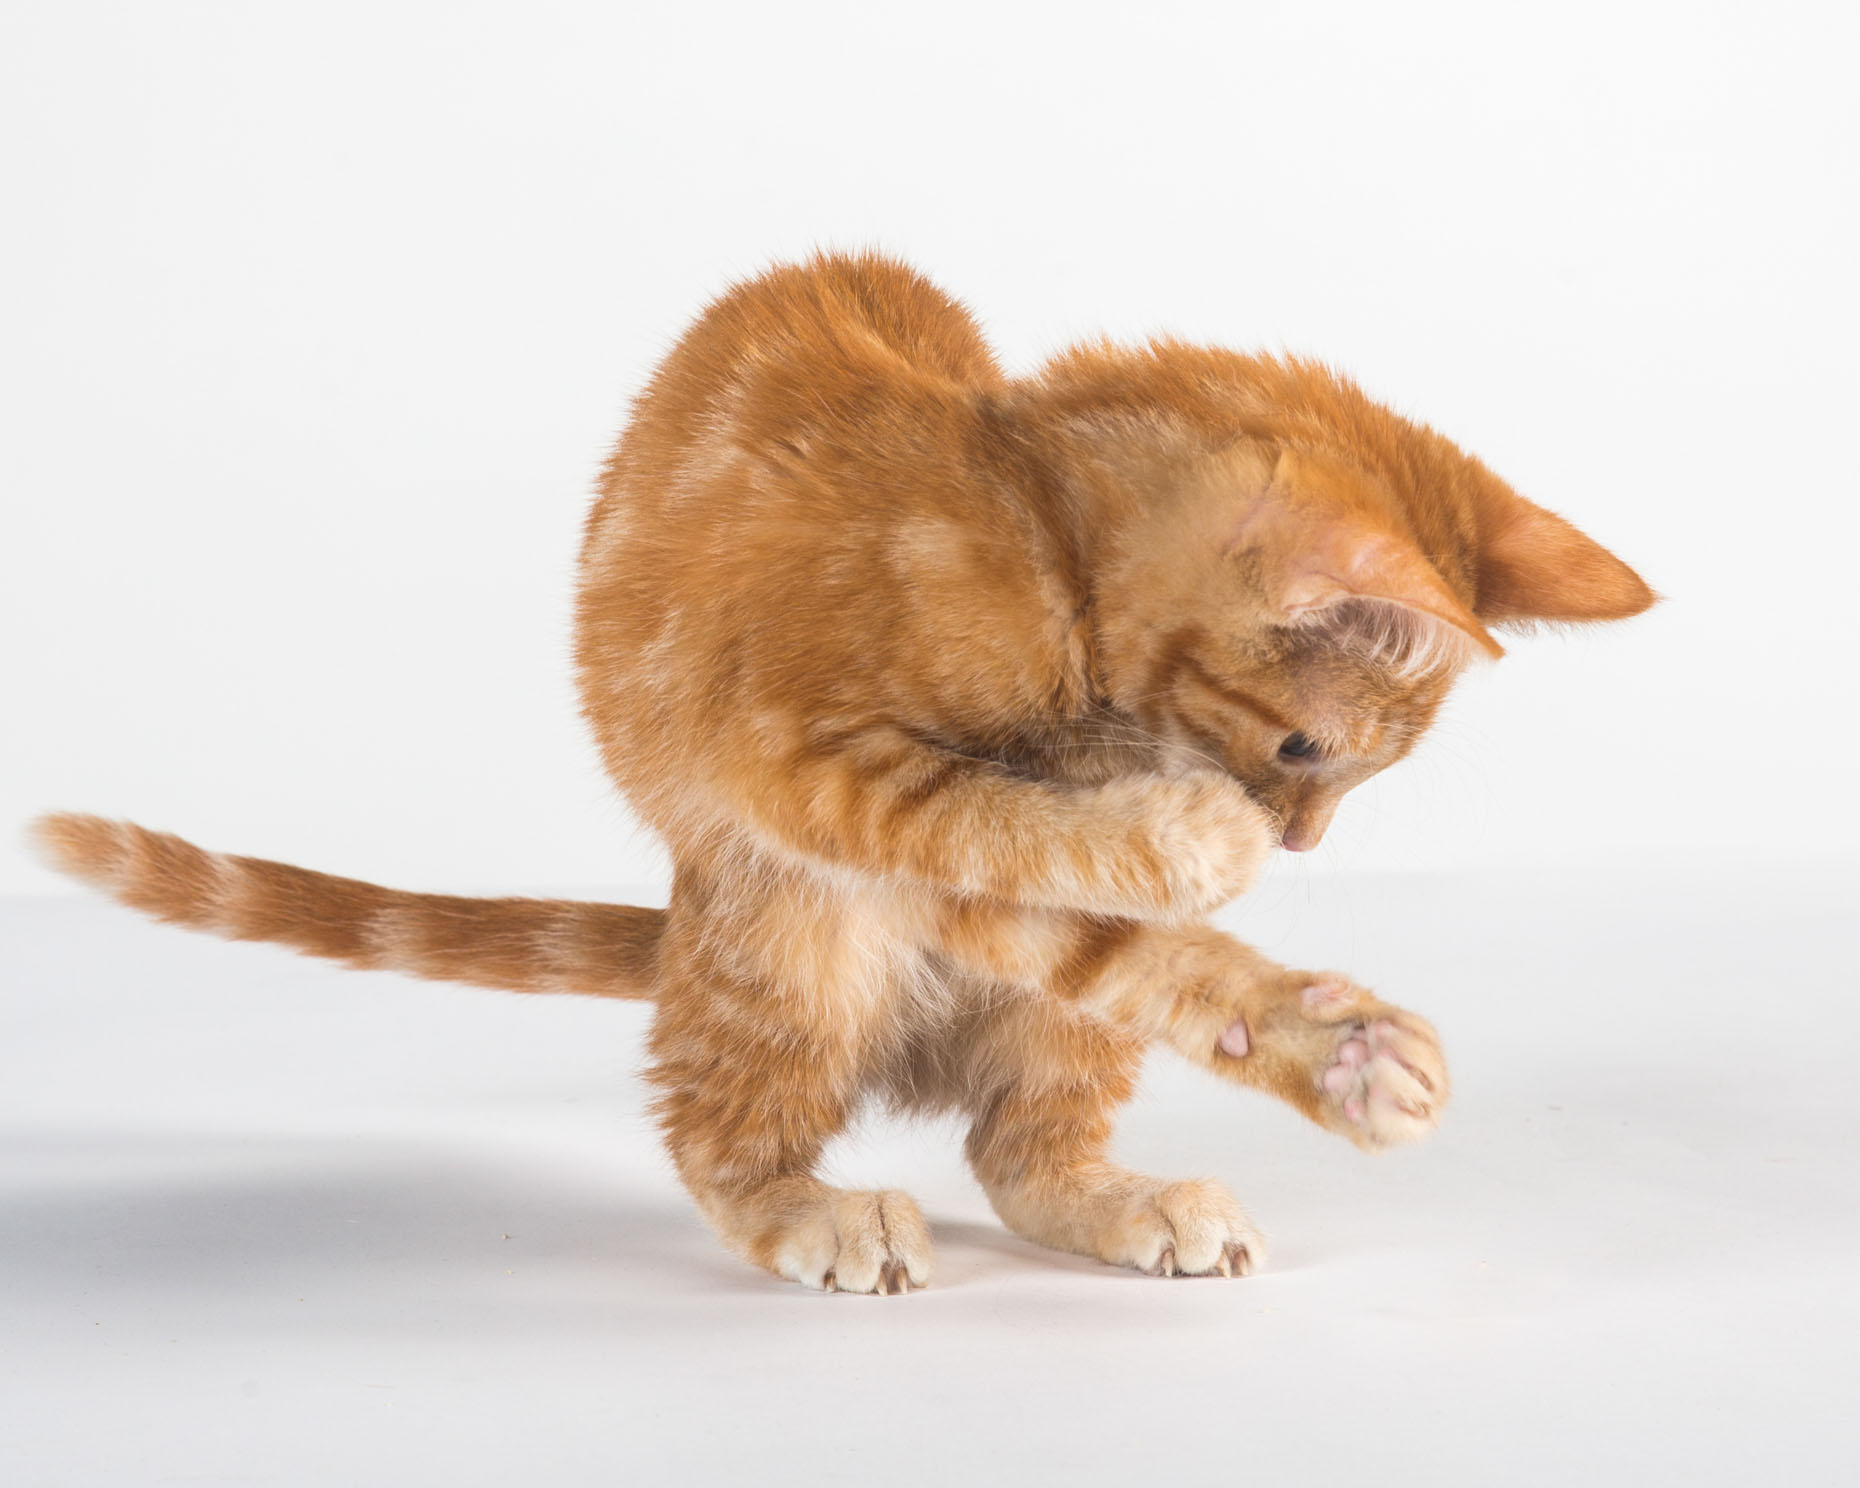 Commercial Pet Photography | Orange Kitten Playing by Mark Rogers